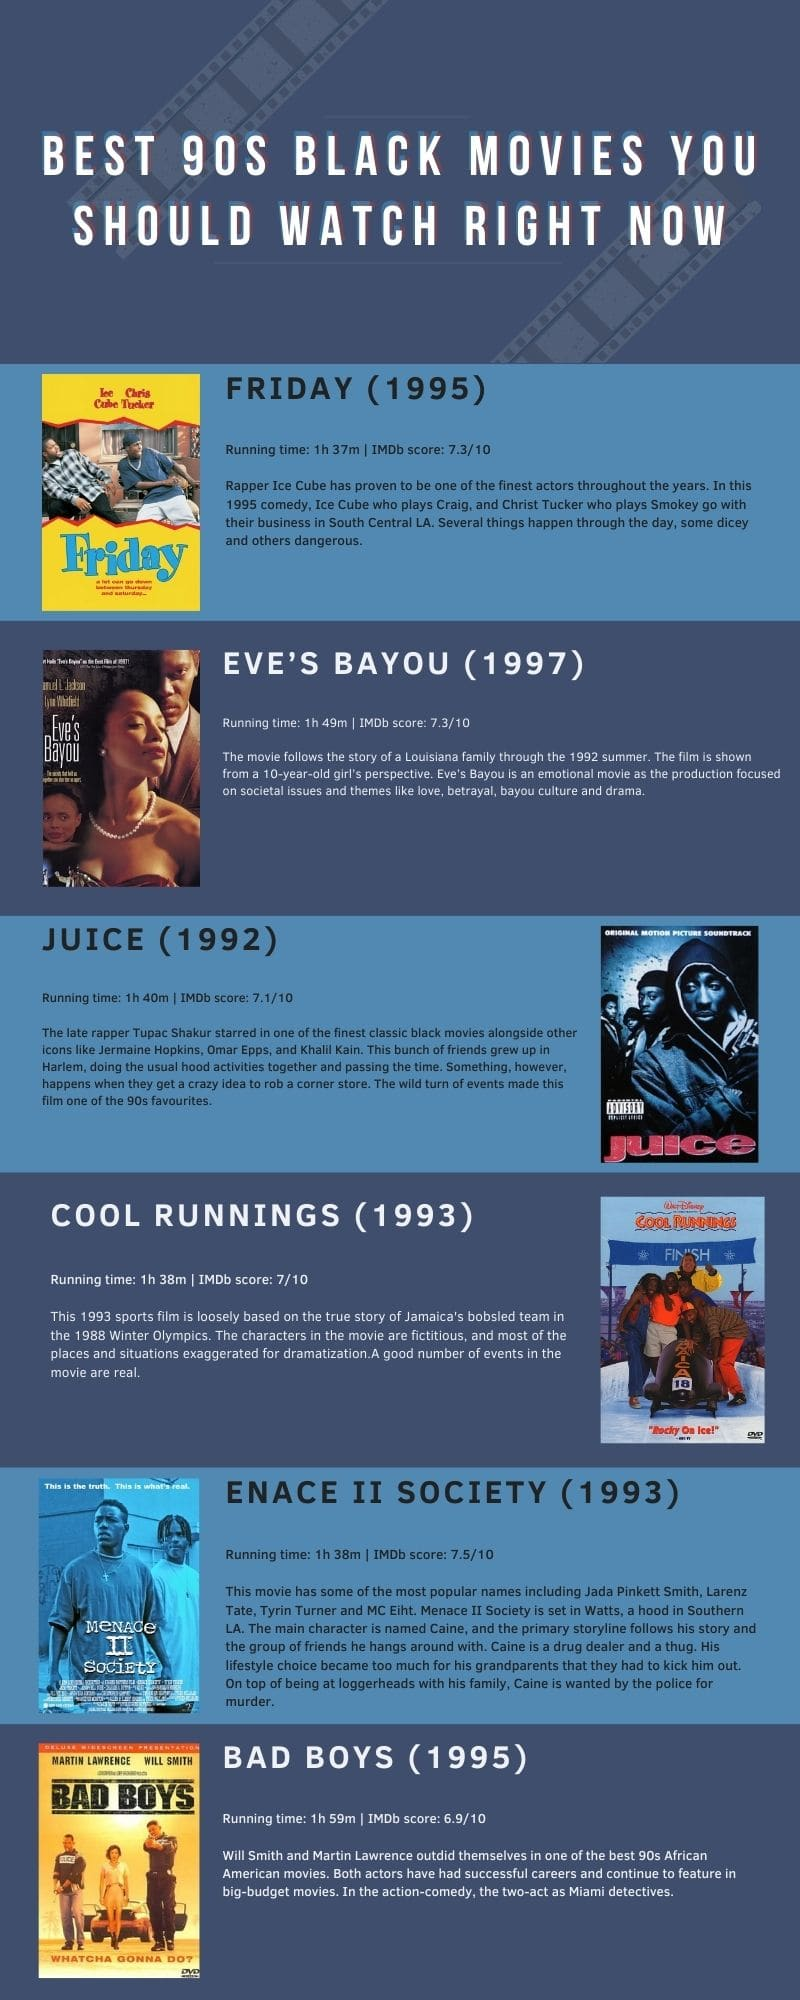 best 90s black movies you should watch right now